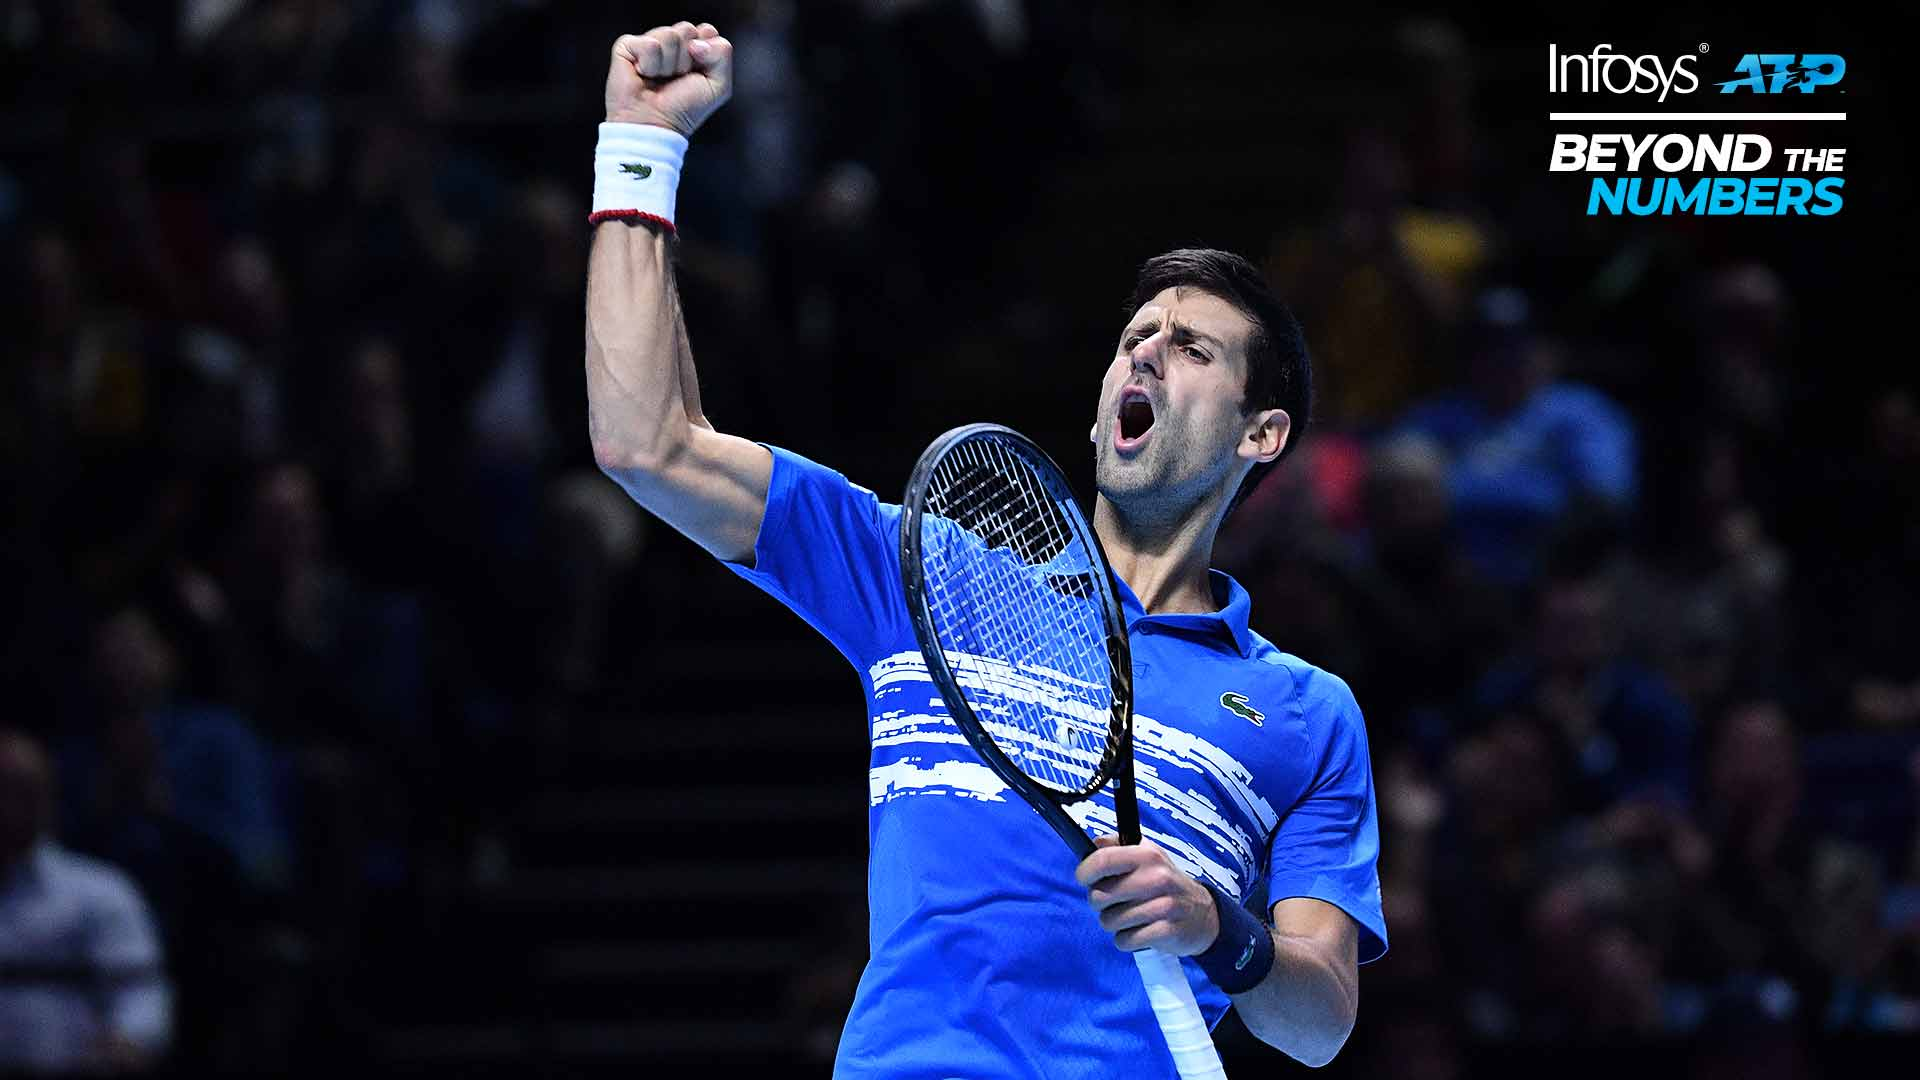 Novak Djokovic doesn't stay down after losing his serve.